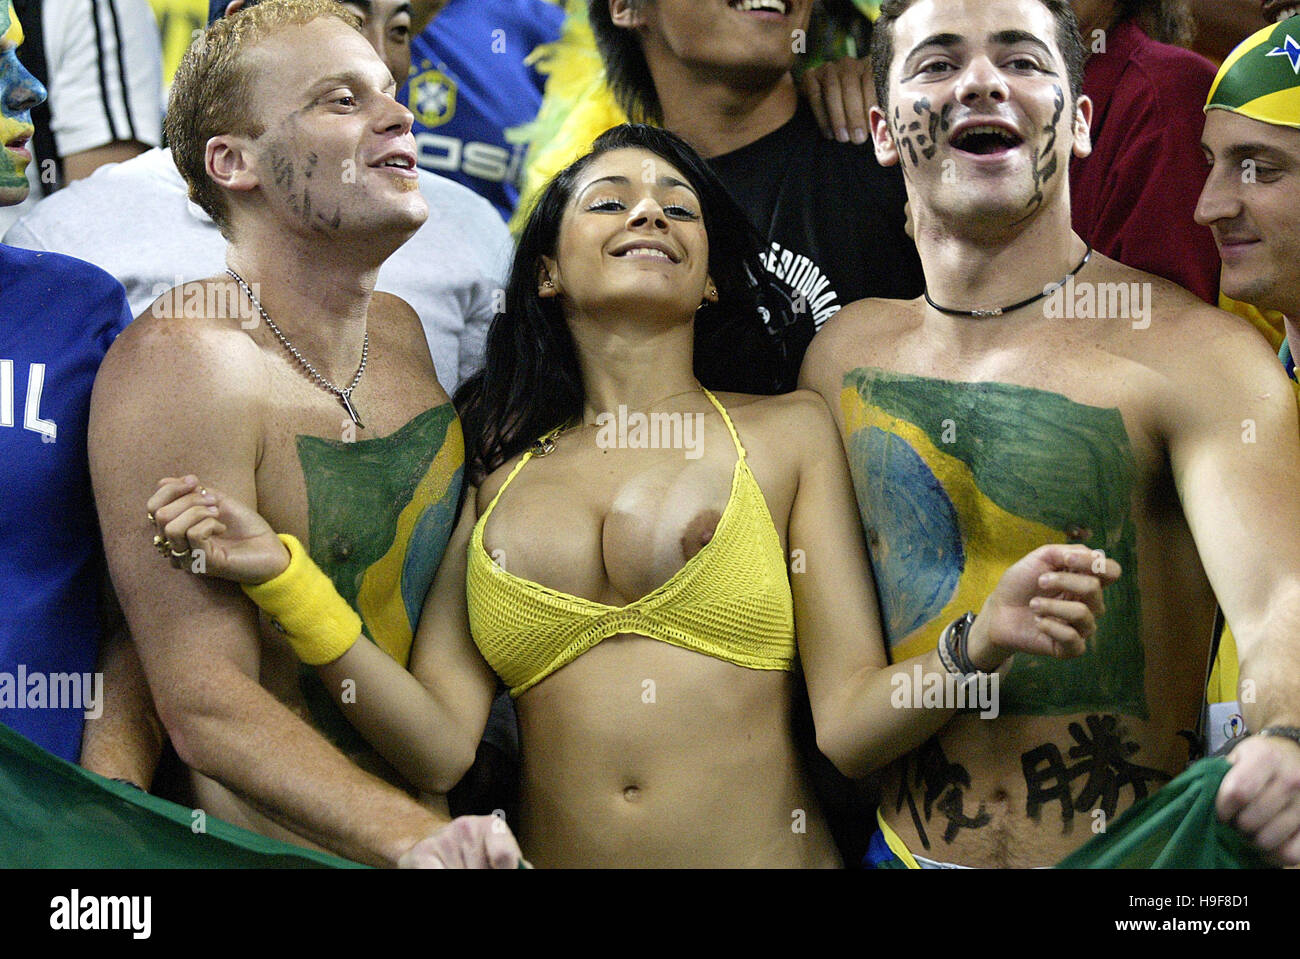 Share your Brazil world cup fans